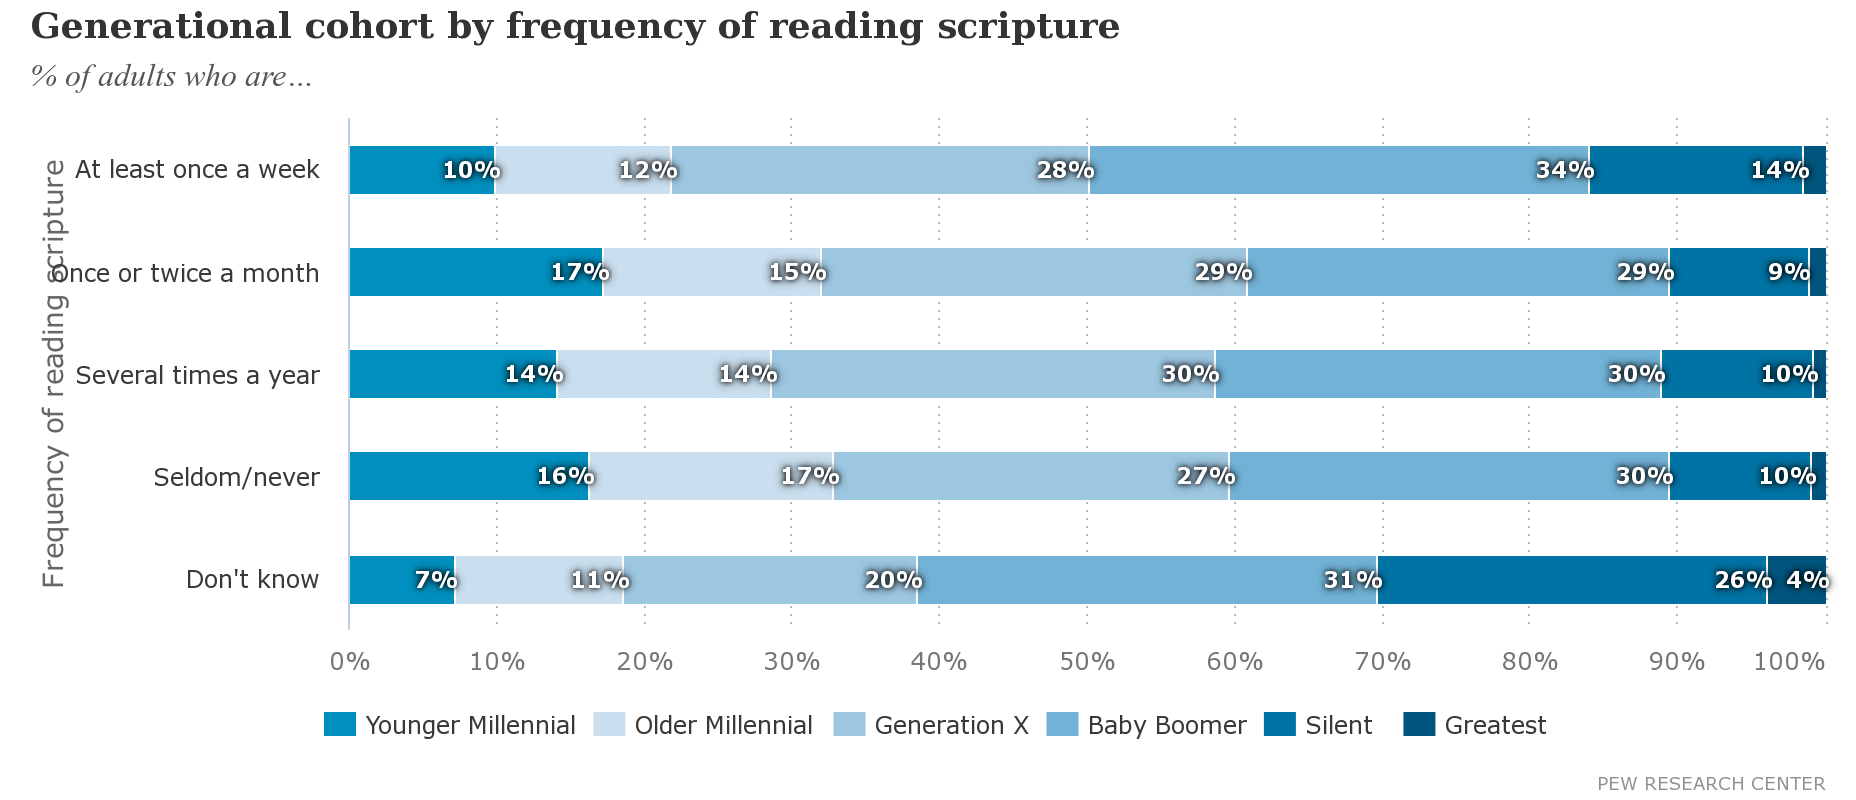 generational frequency of reading scripture